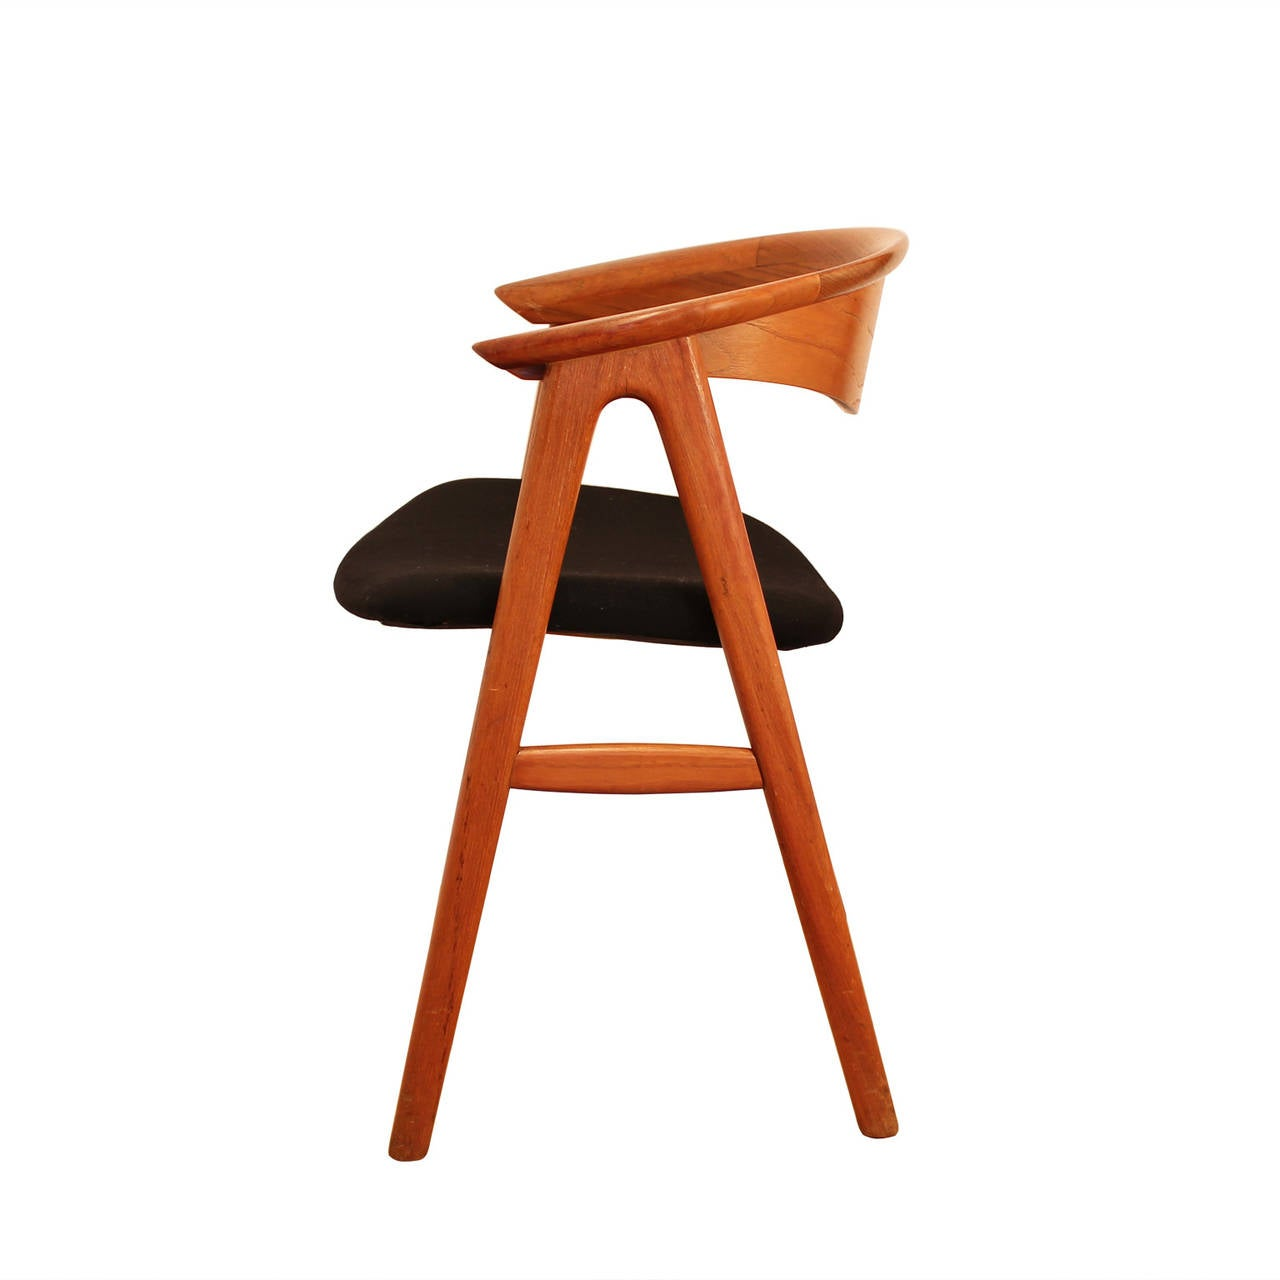 erik kirkegaard teak compass sculpted chair for sale at